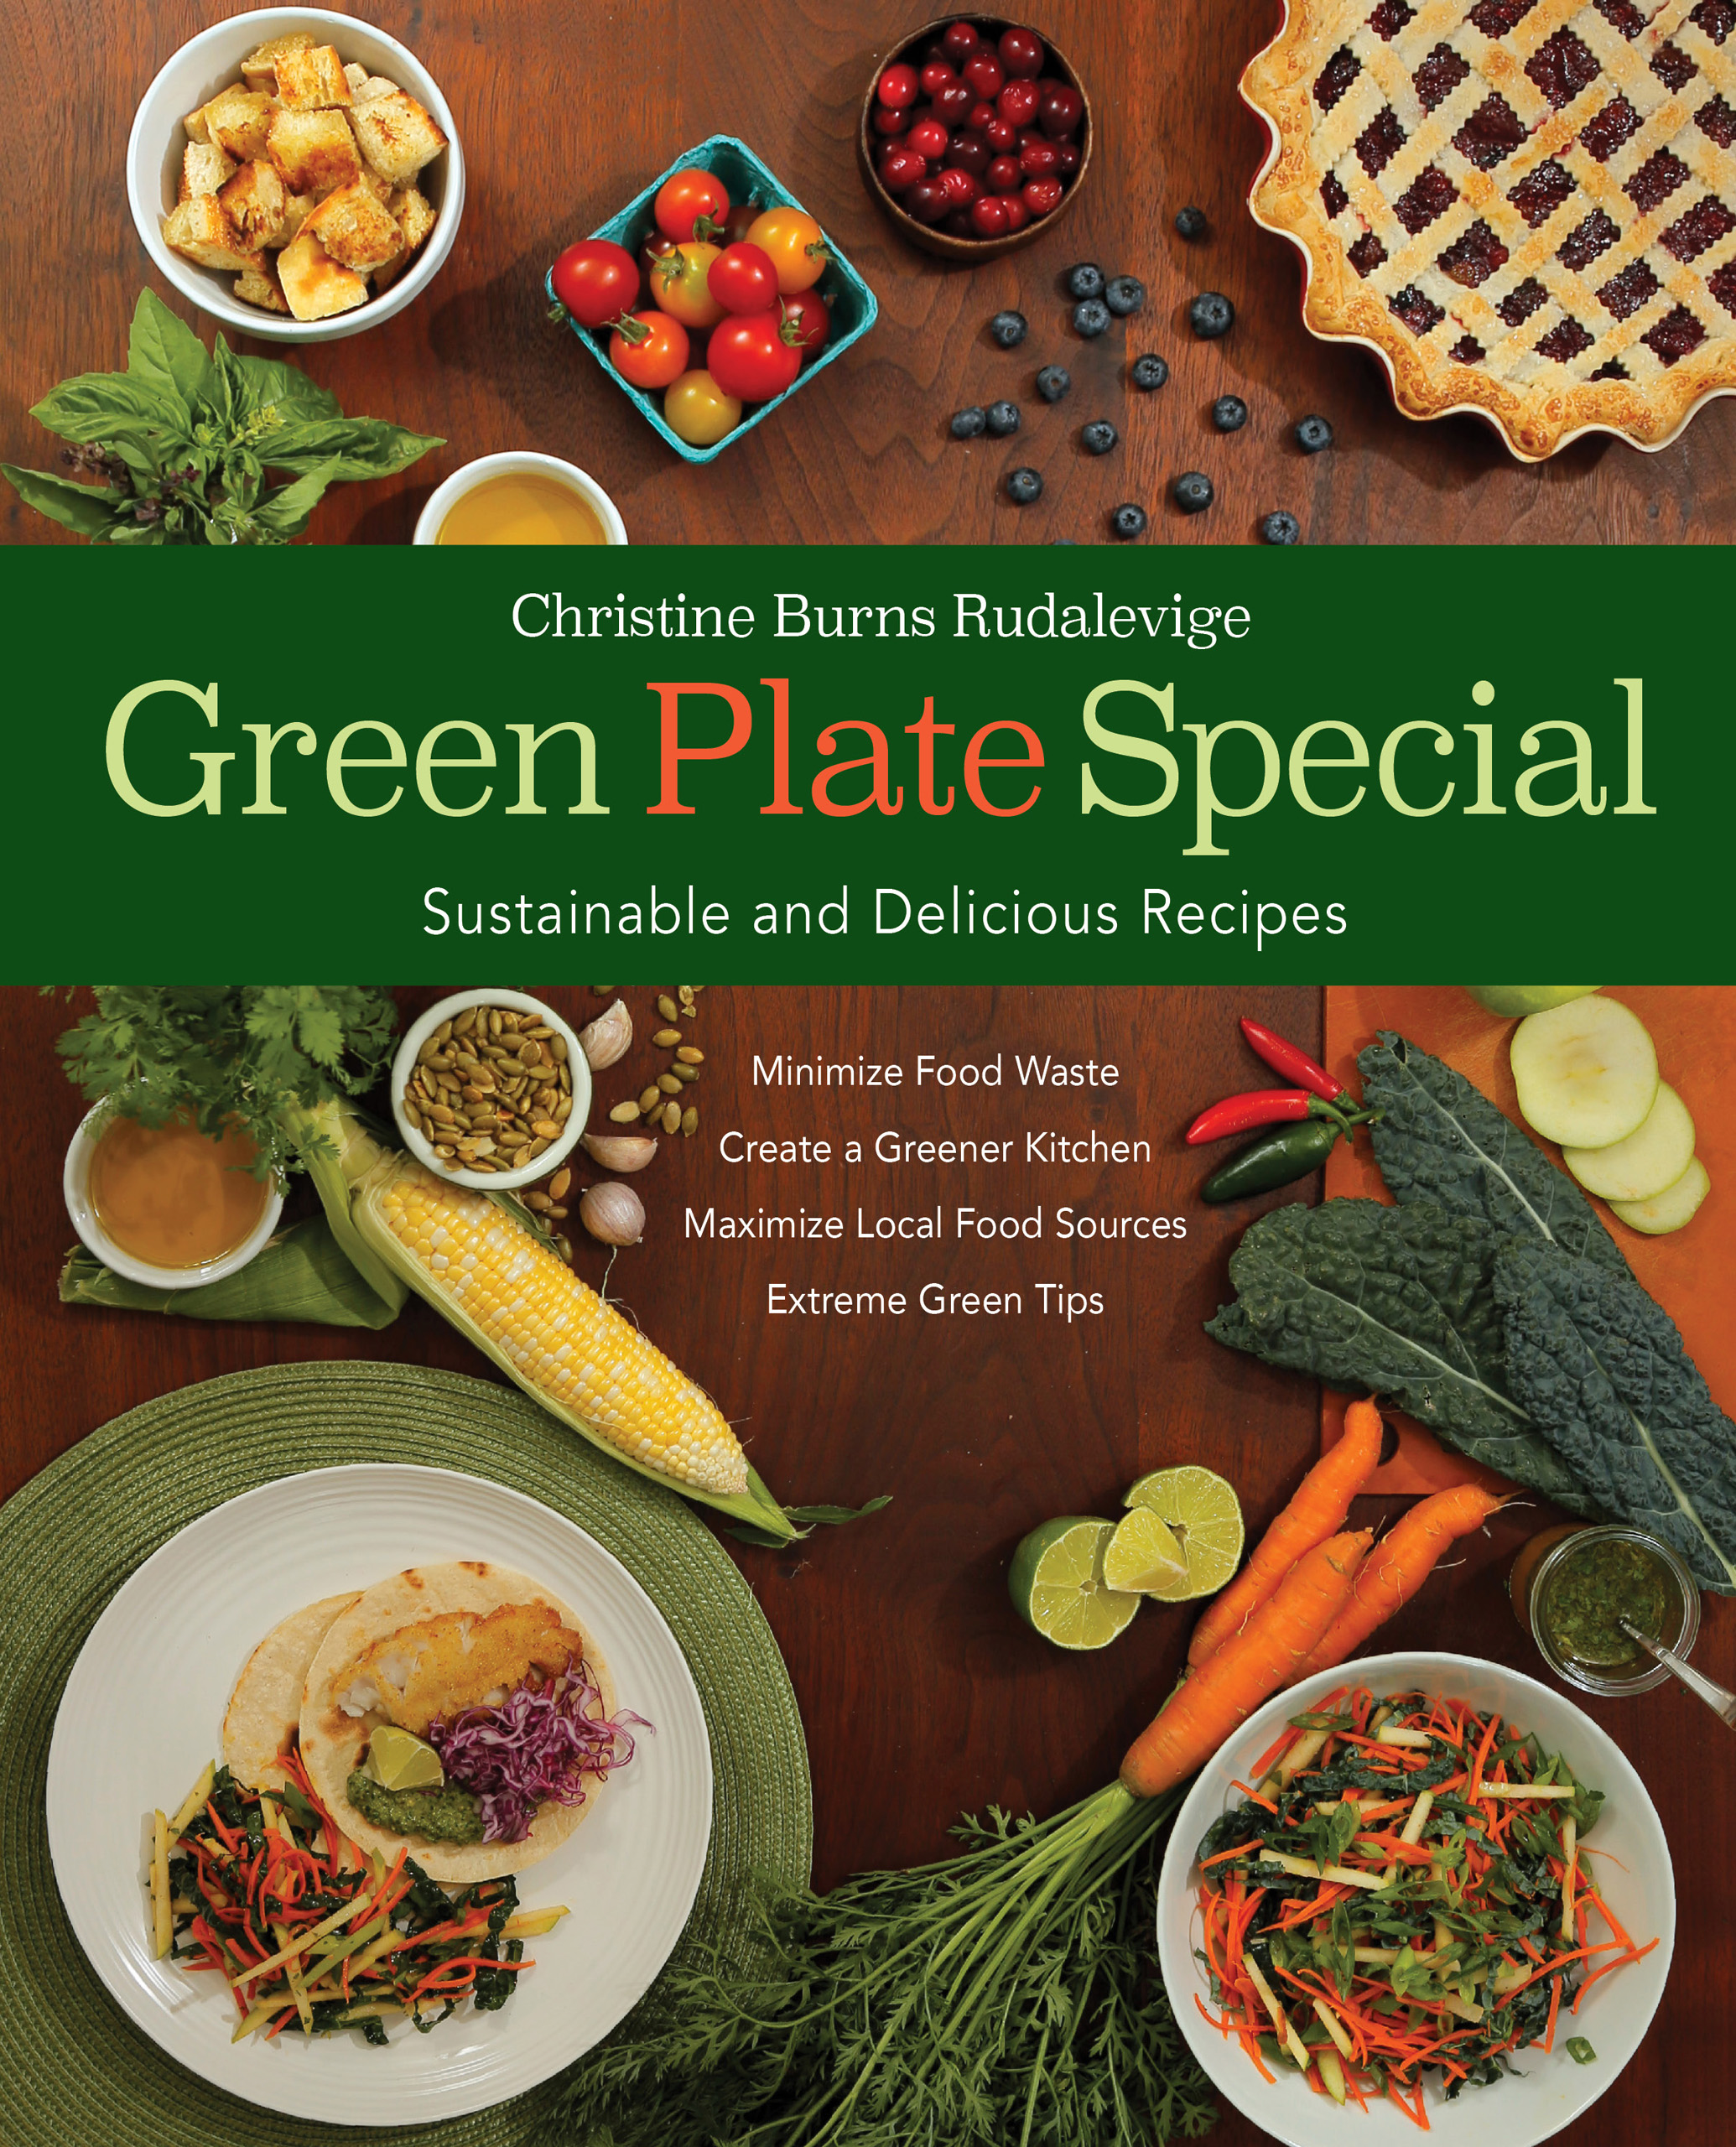 Green Plate Special cookbook by Christine Burns Rudalevige